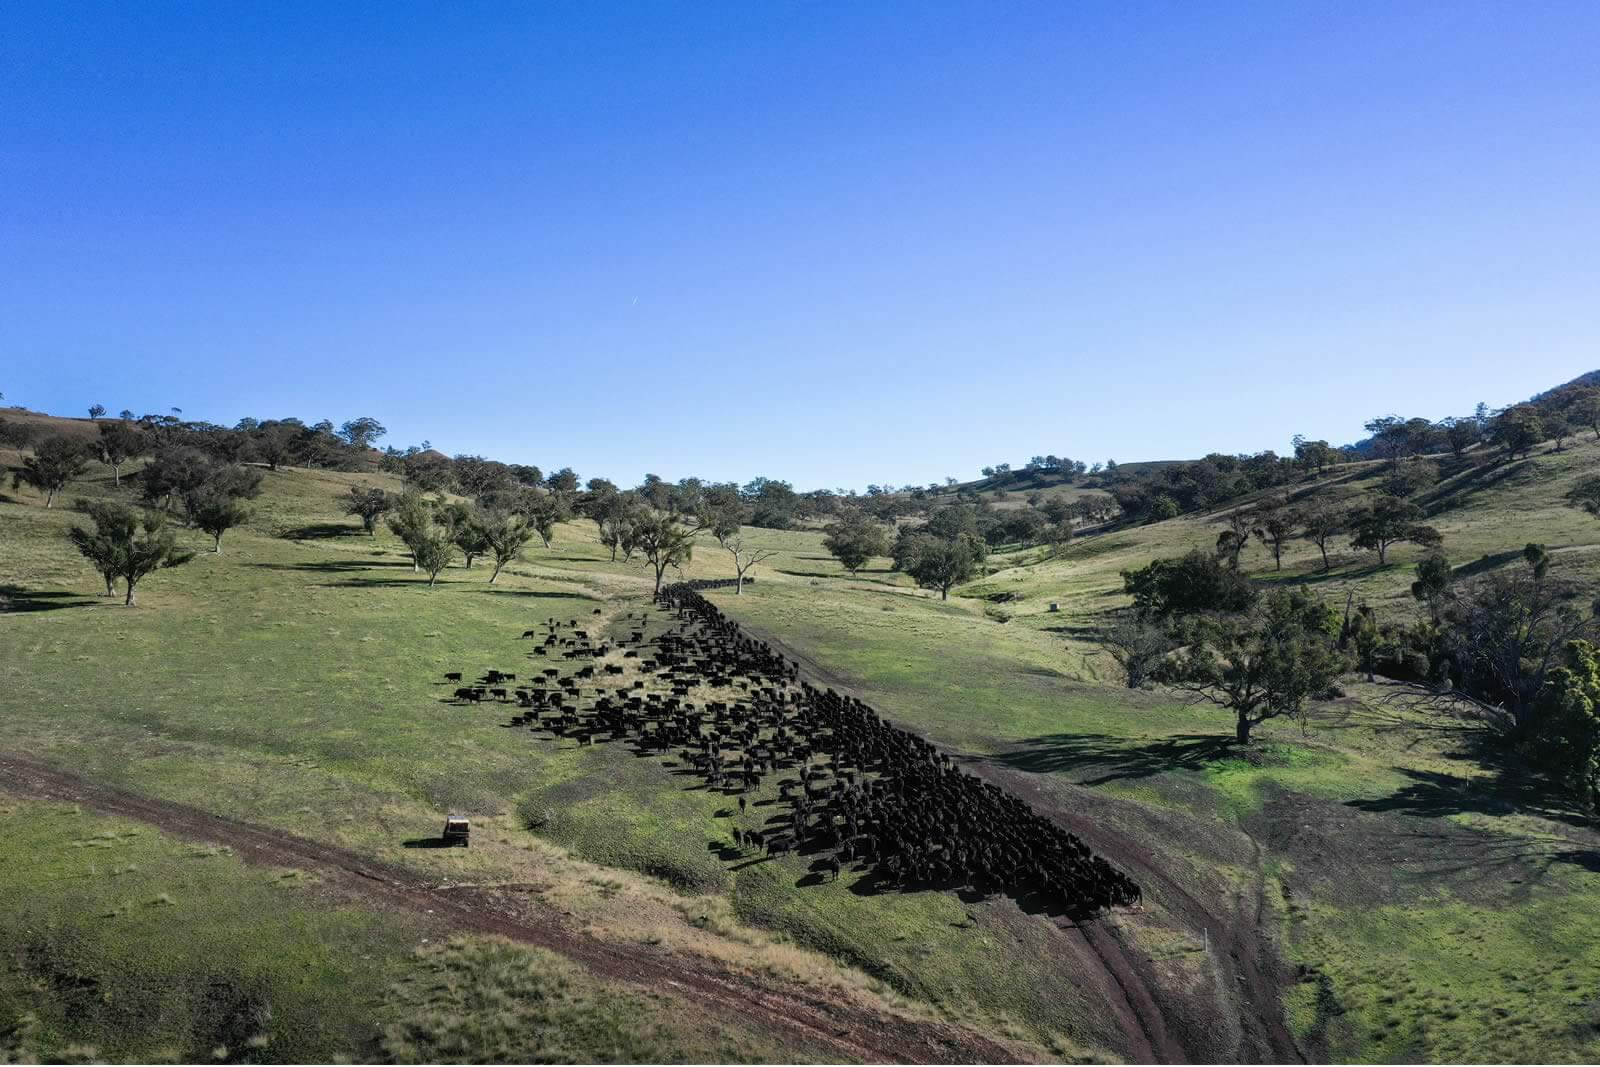 PRESS RELEASE: Gibbergunyah, Scone – Upper Hunter NSW:image property-sale-scone-upper-hunter-nsw-australia